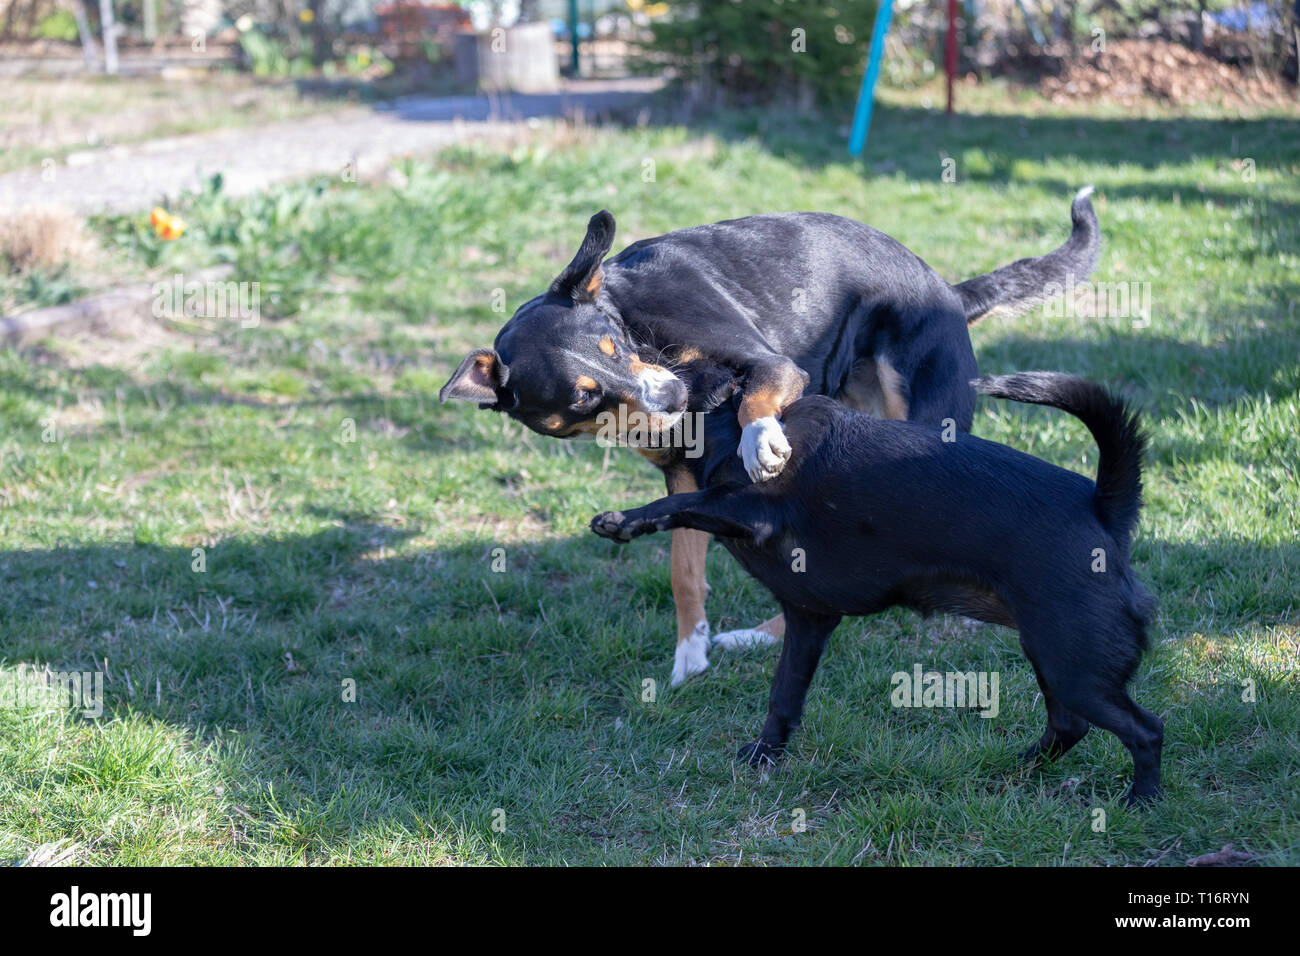 Appenzeller Mountain dog plays with a Labrador mix puppy outdoors - Stock Image